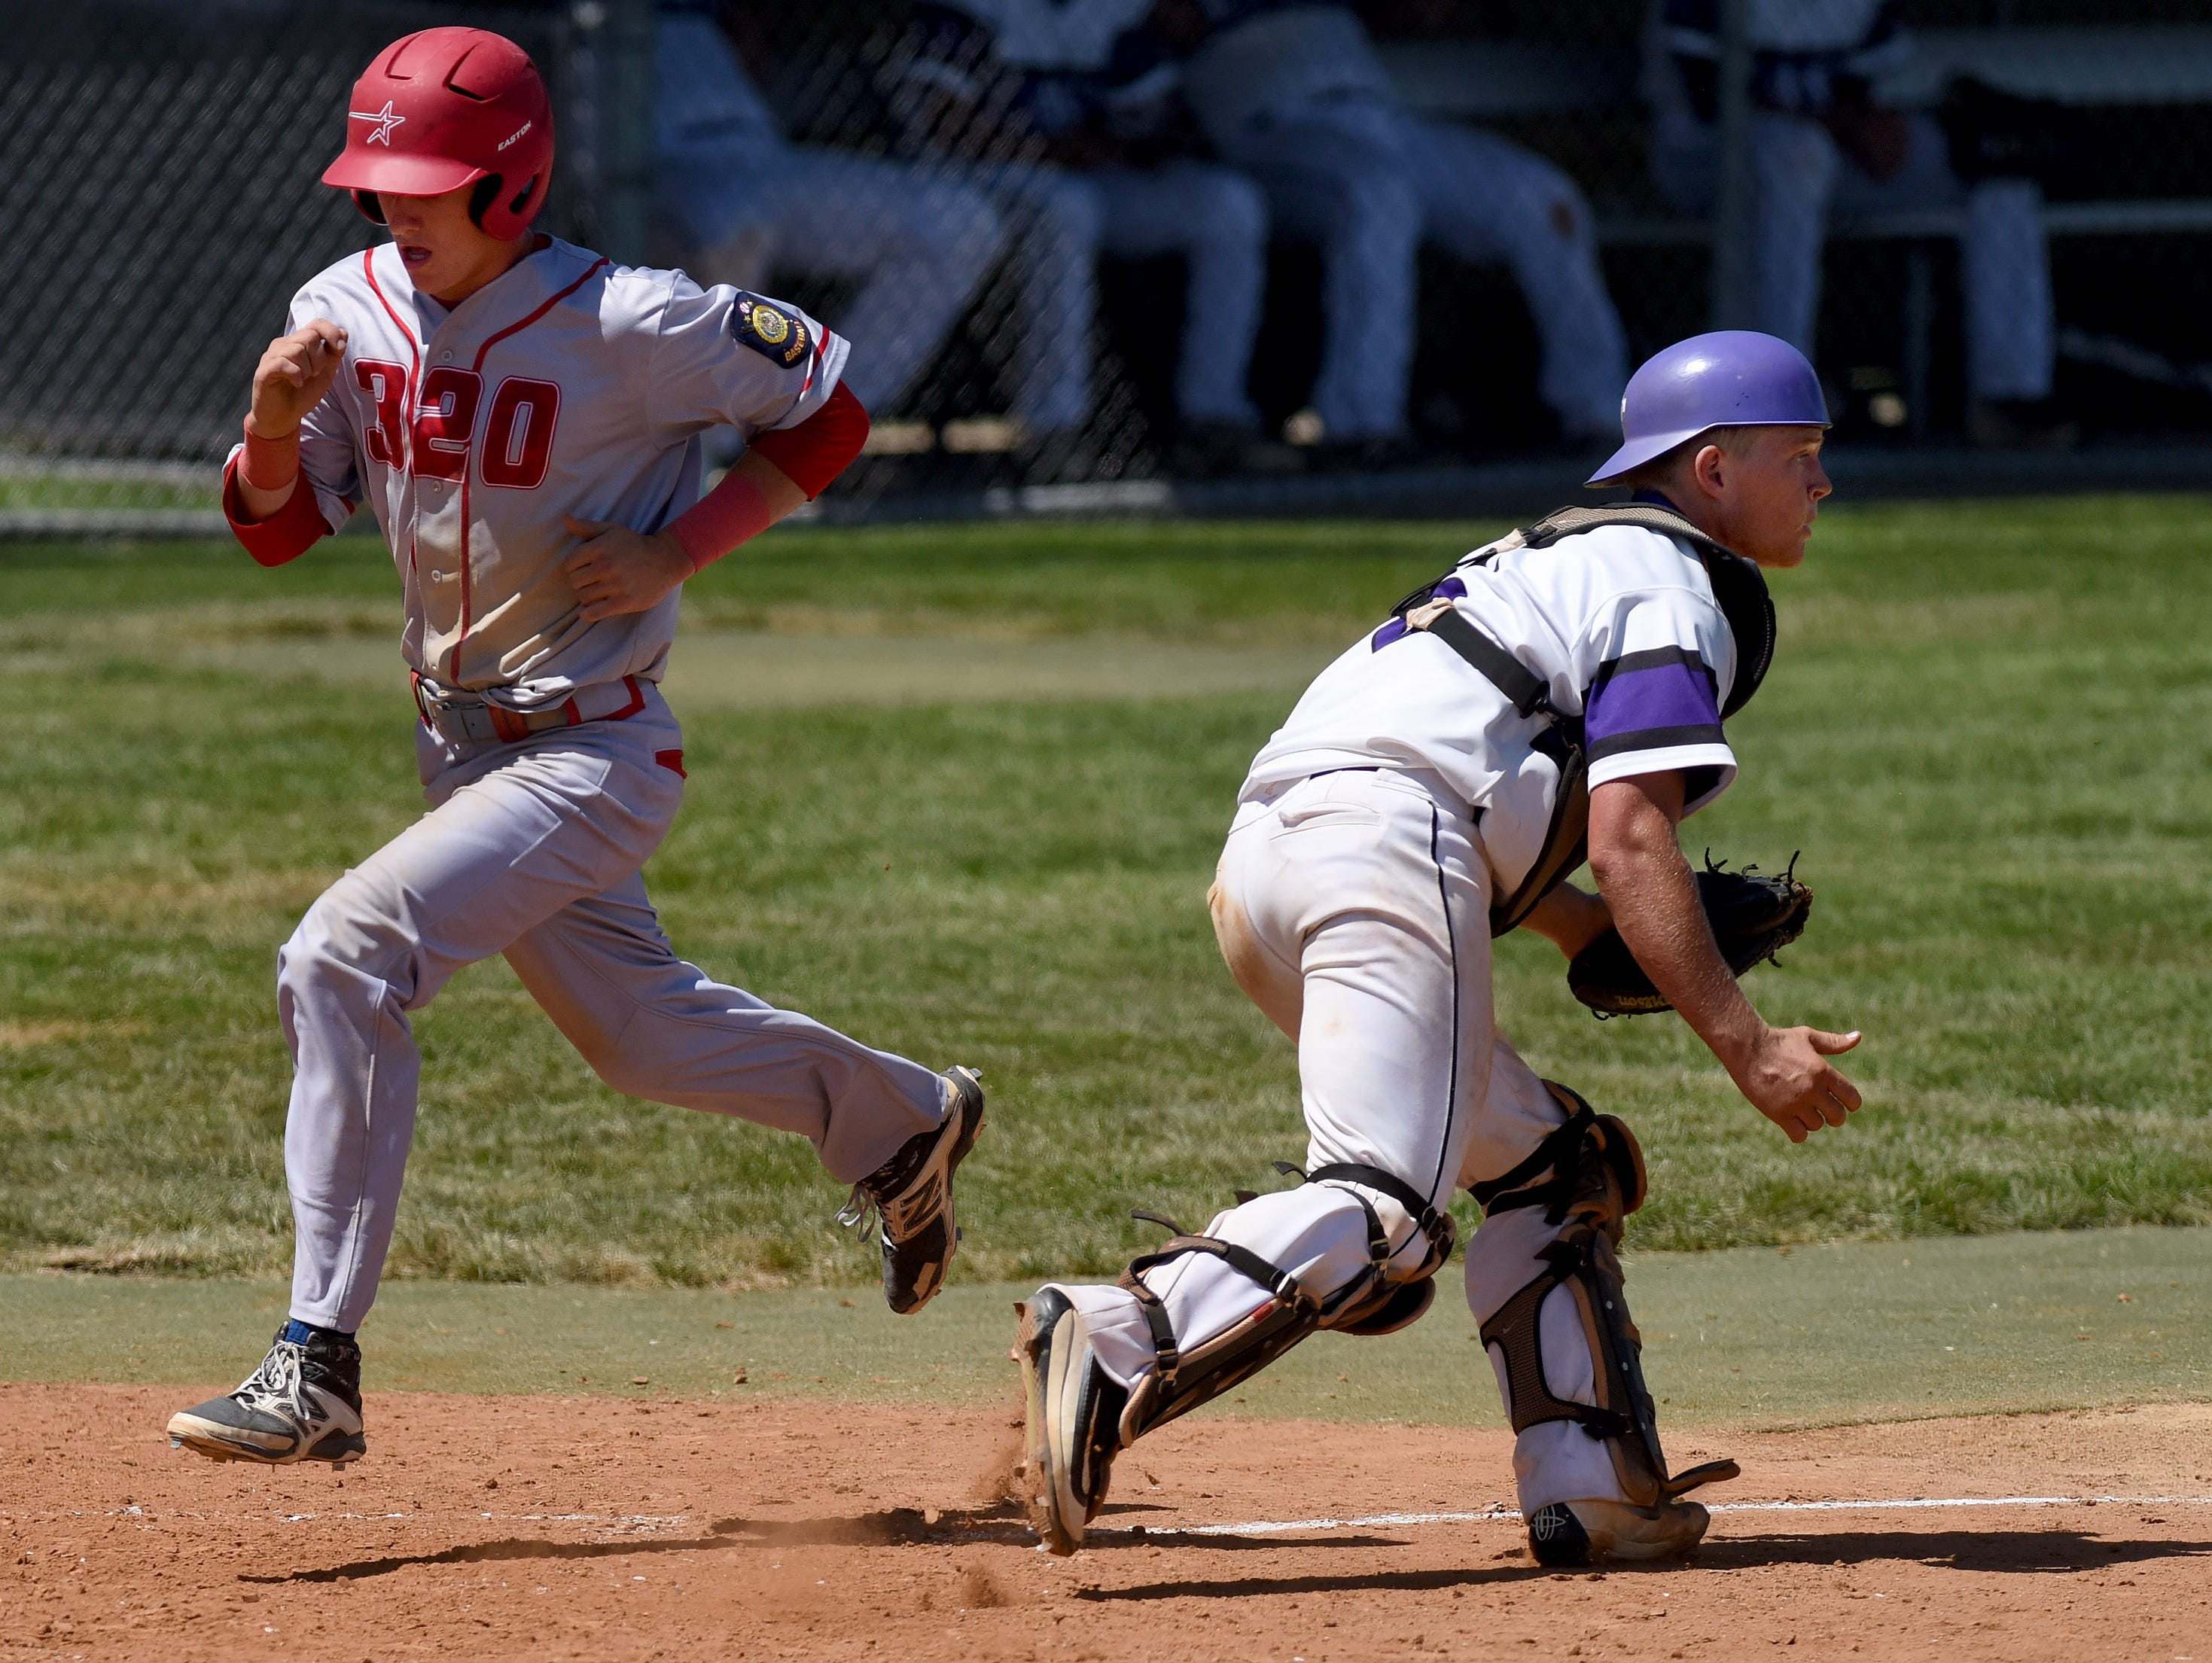 Rapid City Post 320's Cam White runs home past Sioux Falls East Post 15's catcher Josh Nevin during the American Legion Class A Baseball State Tournament at Harmodon Park on Saturday afternoon.